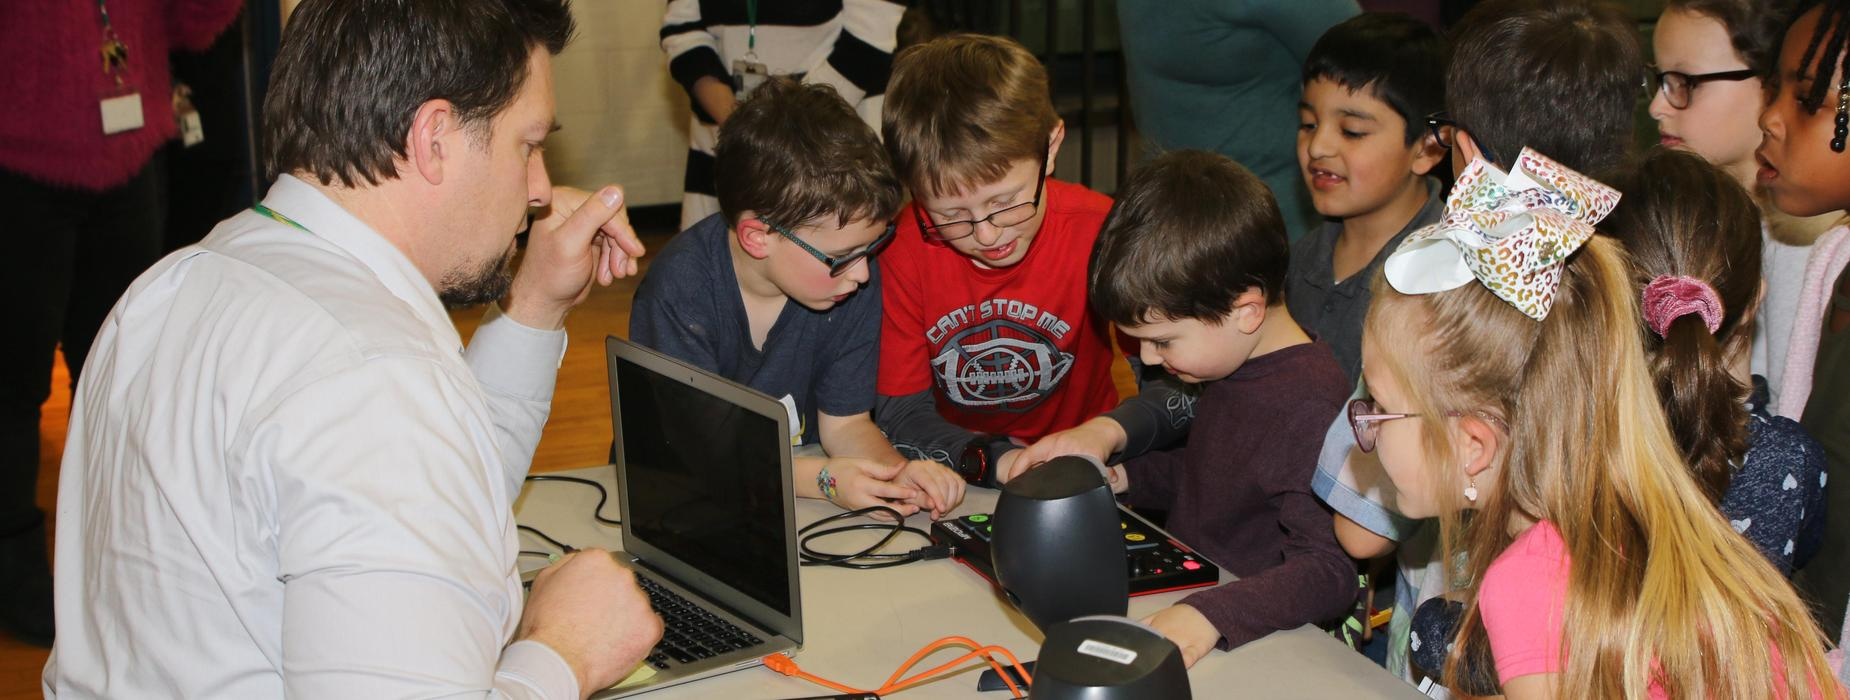 Students with a computer game.